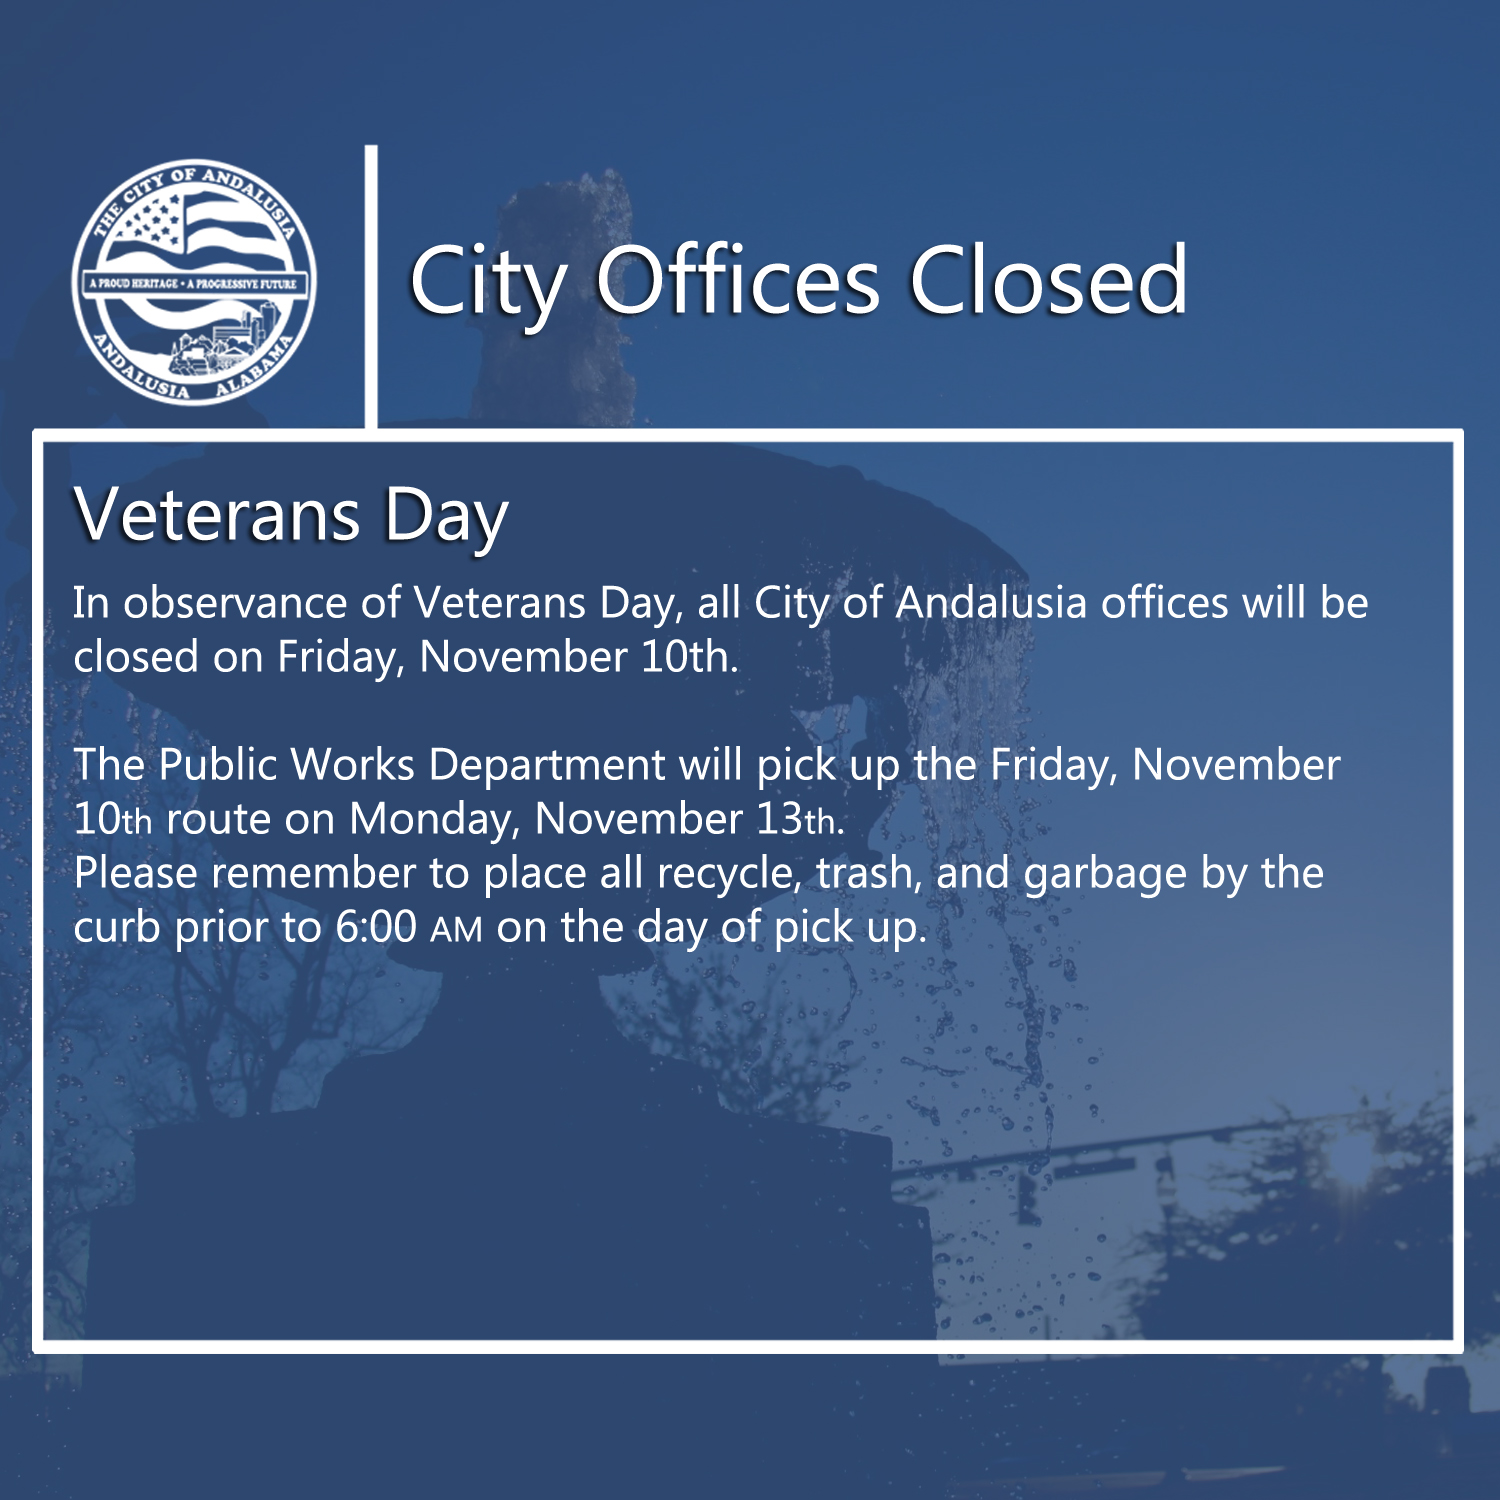 Facebook City Offices Closed Nov10